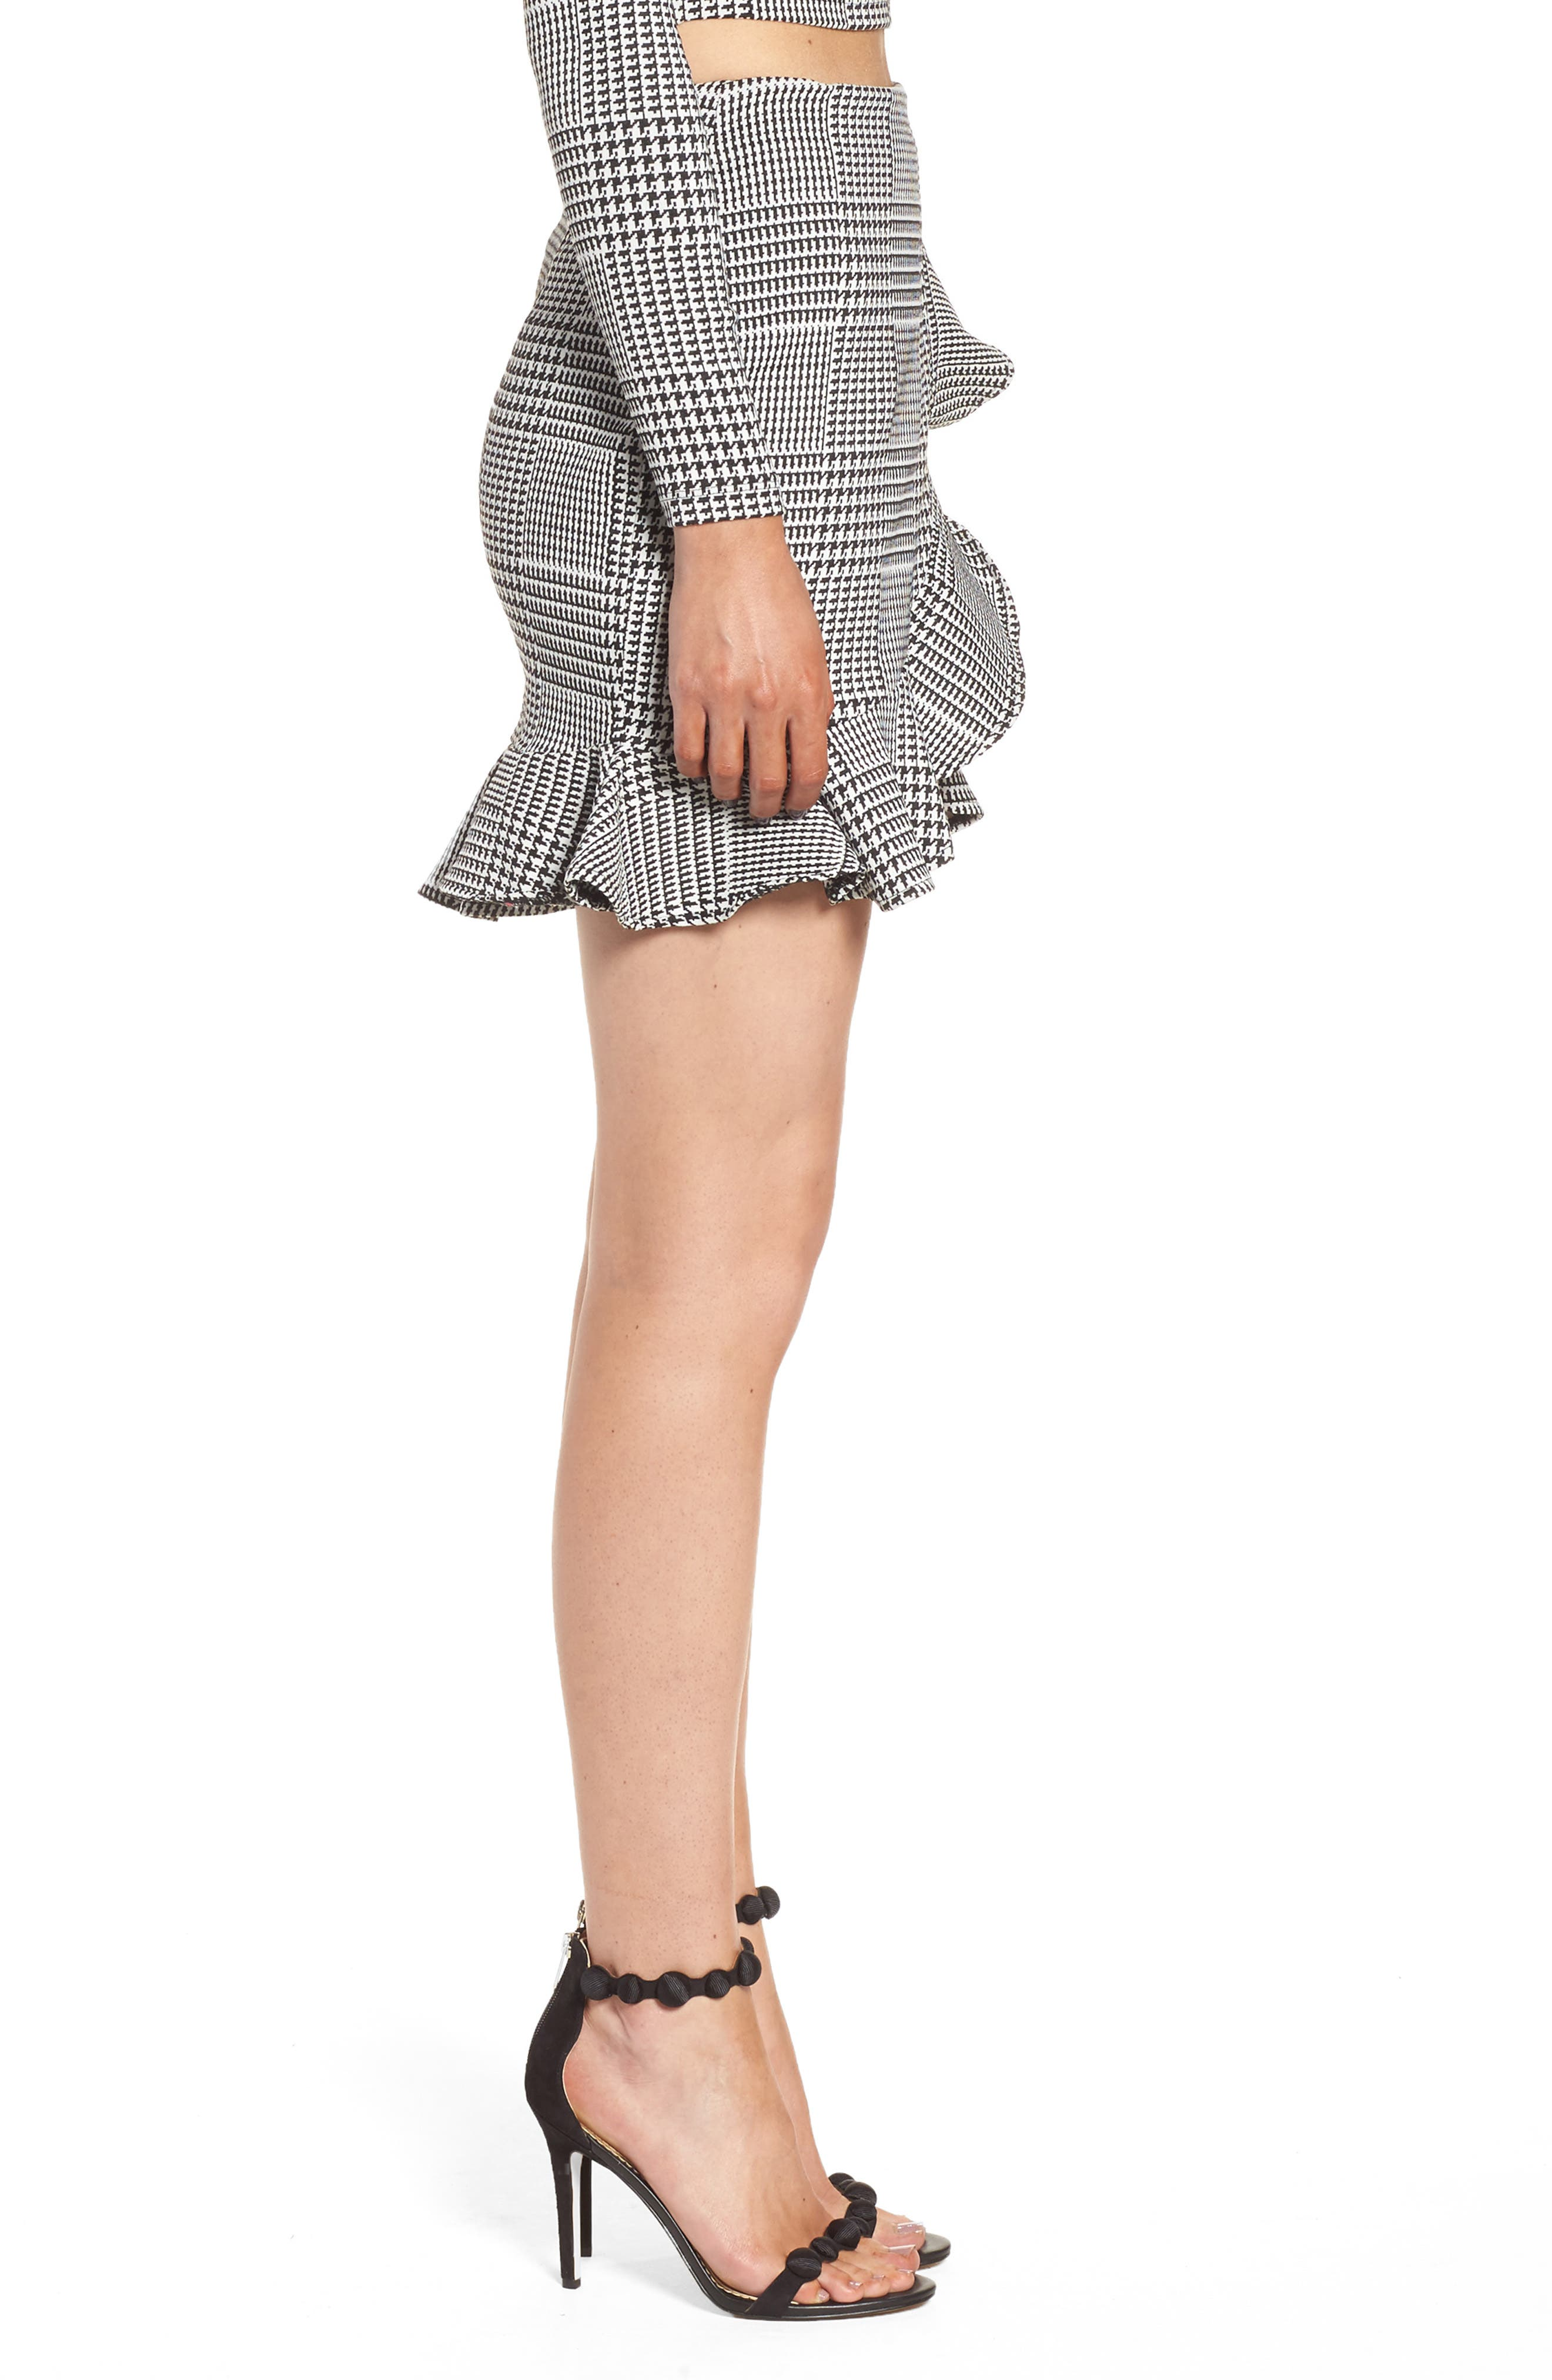 Affection Ruffle Houndstooth Skirt,                             Alternate thumbnail 3, color,                             020